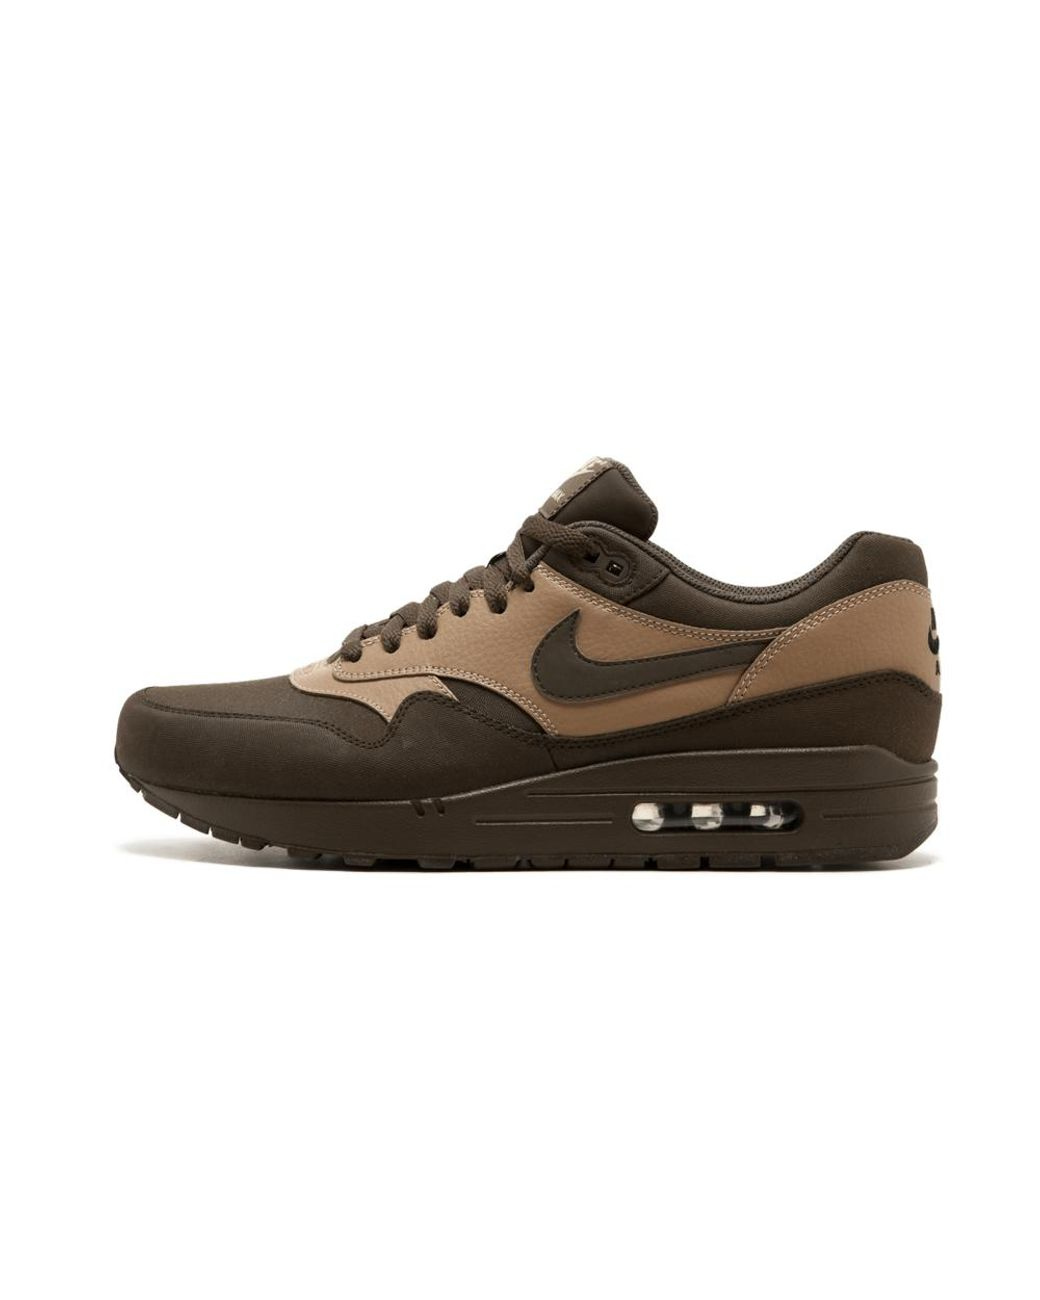 Nike Air Max 1 Ltr Premium Shoes Size 10.5 in 8.5 (Brown